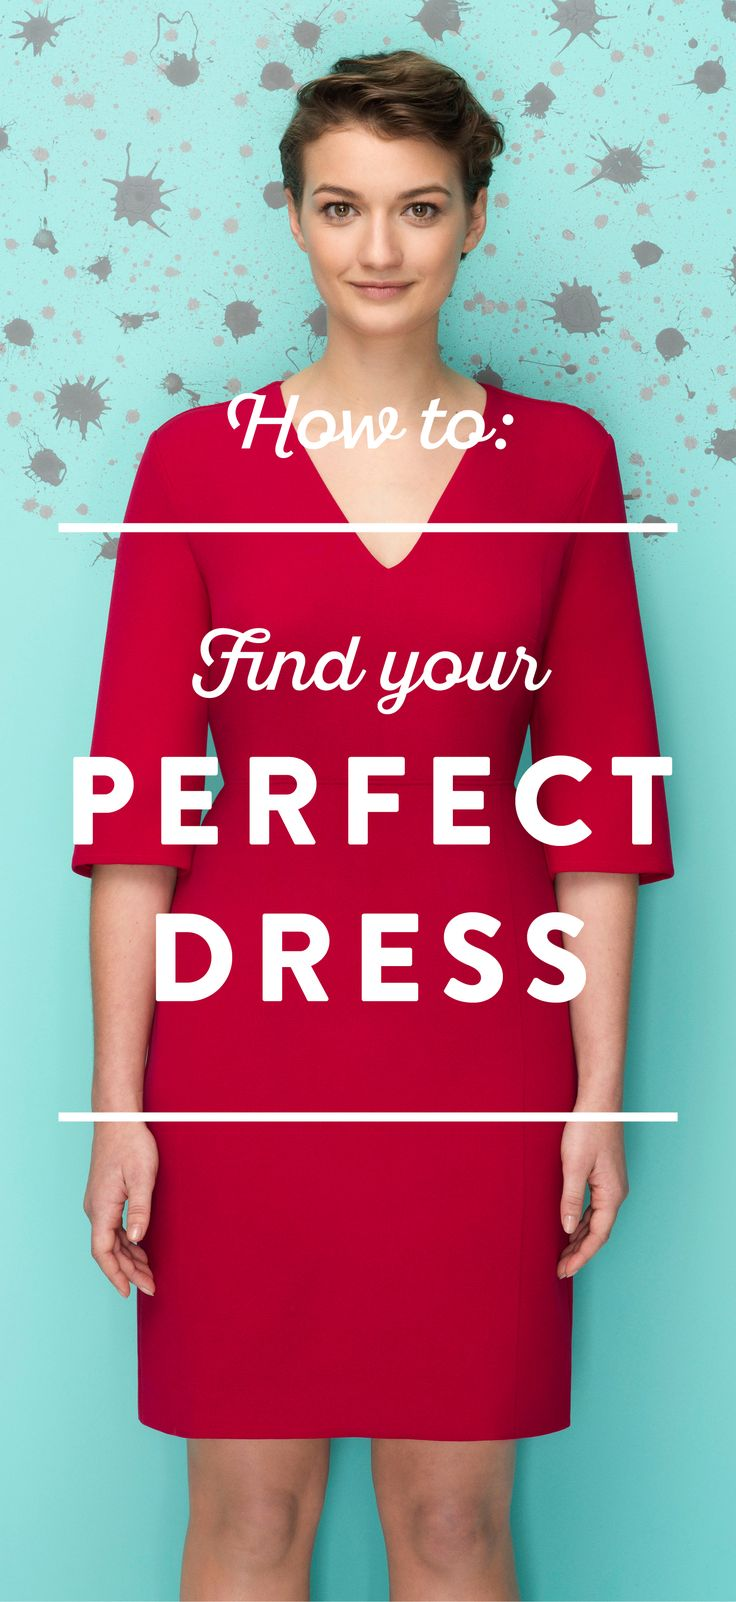 Your perfect dress